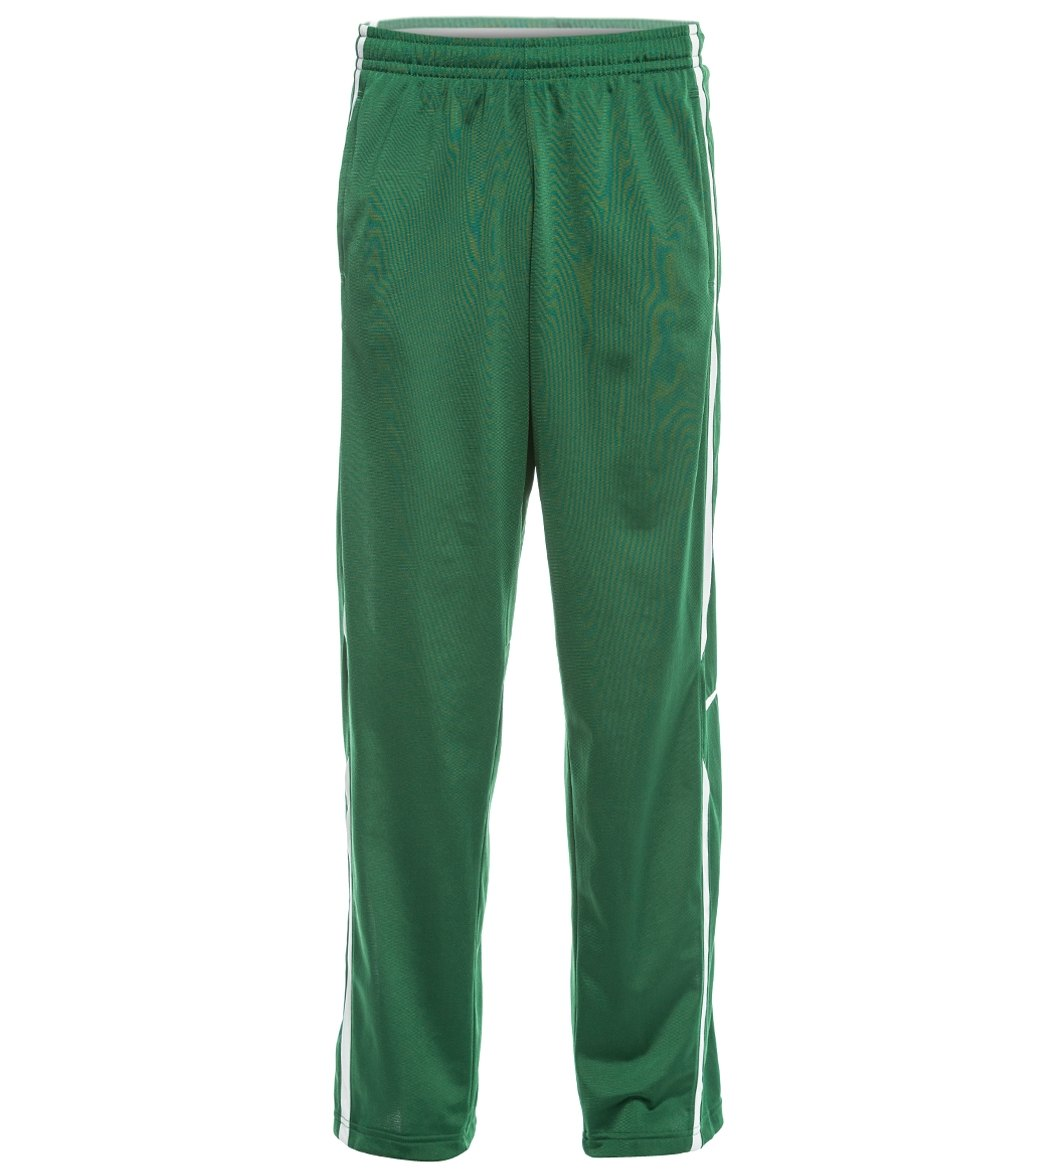 e543e7d14b41 Nike Swim Men s Overtime Warm-Up Pant at SwimOutlet.com